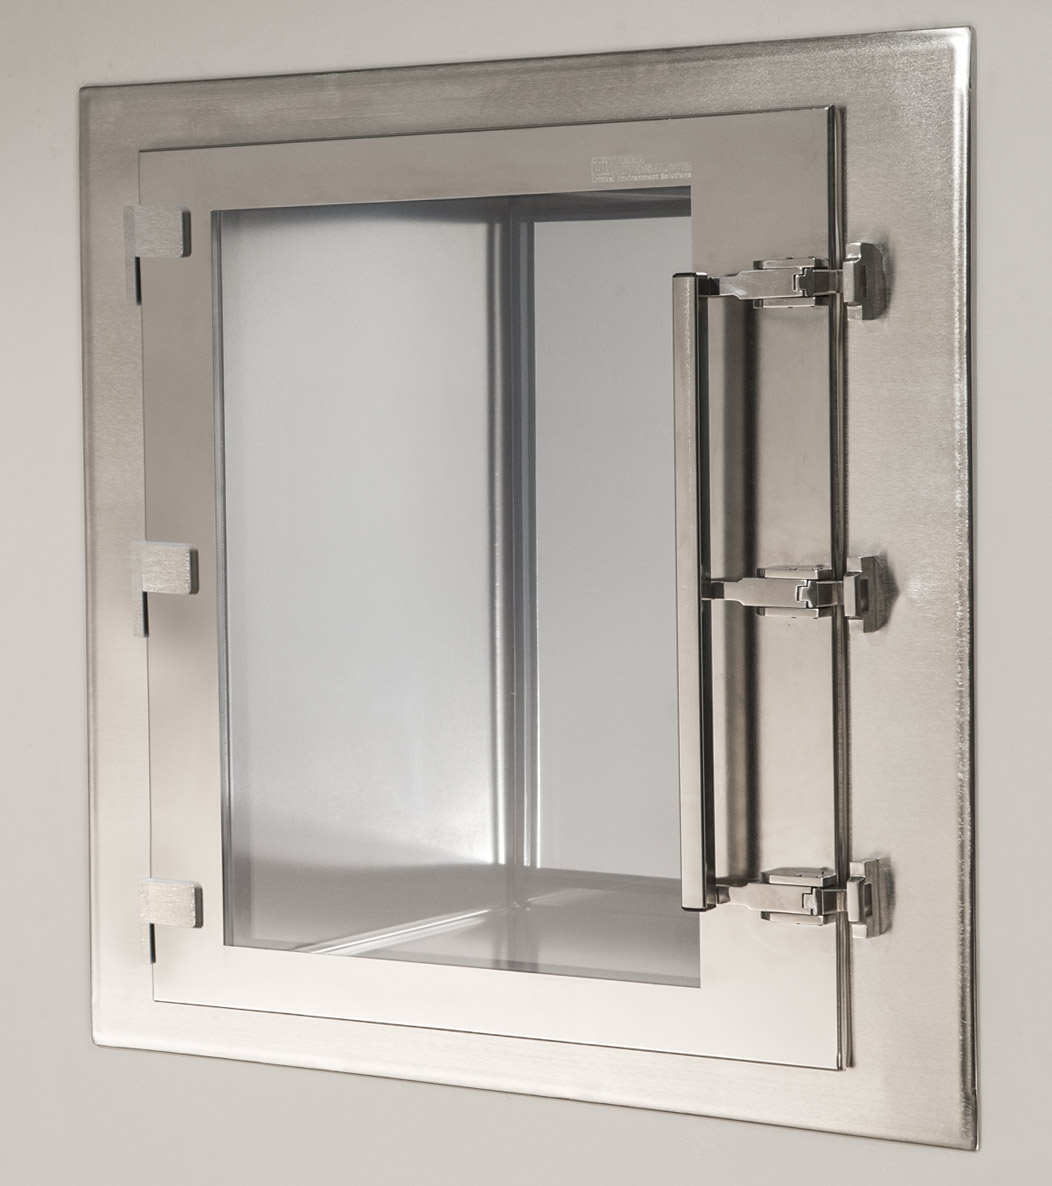 CleanMount CleanSeam Stainless Steel Passthrough Chamber Door